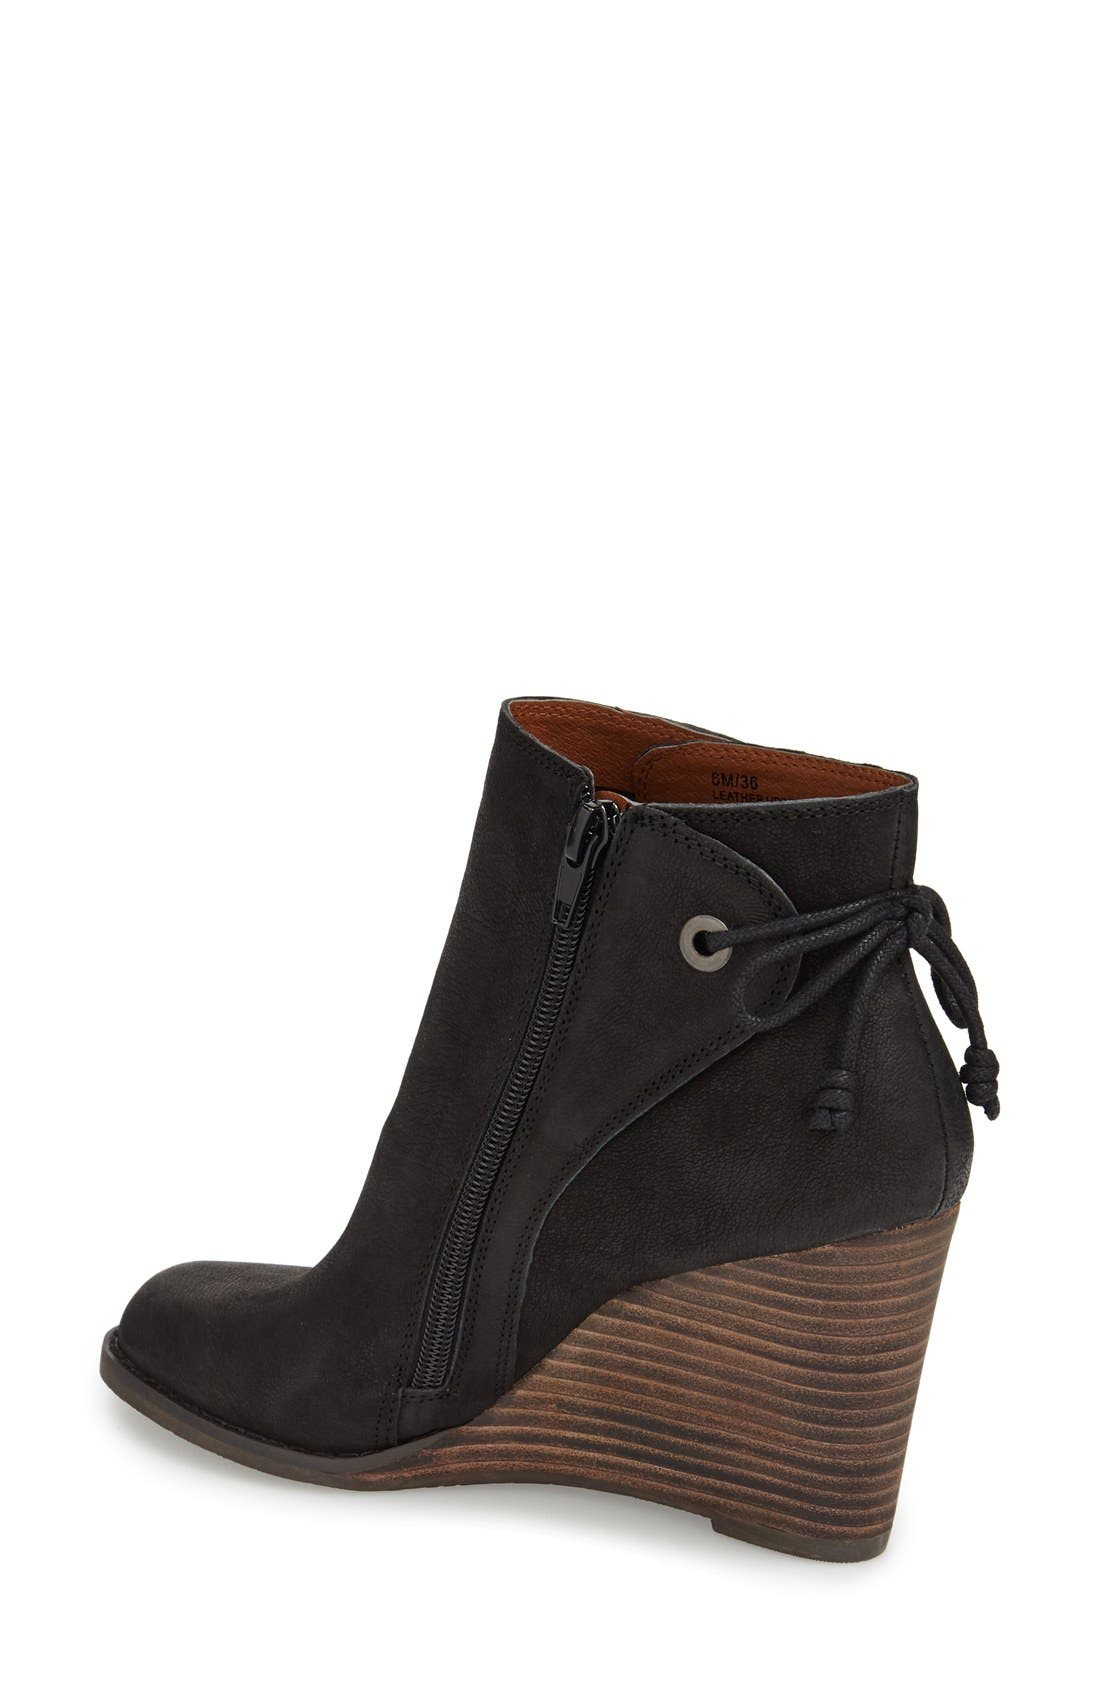 Alternate Image 2  - Lucky Brand 'Yamina' Wedge Zip Bootie (Women)